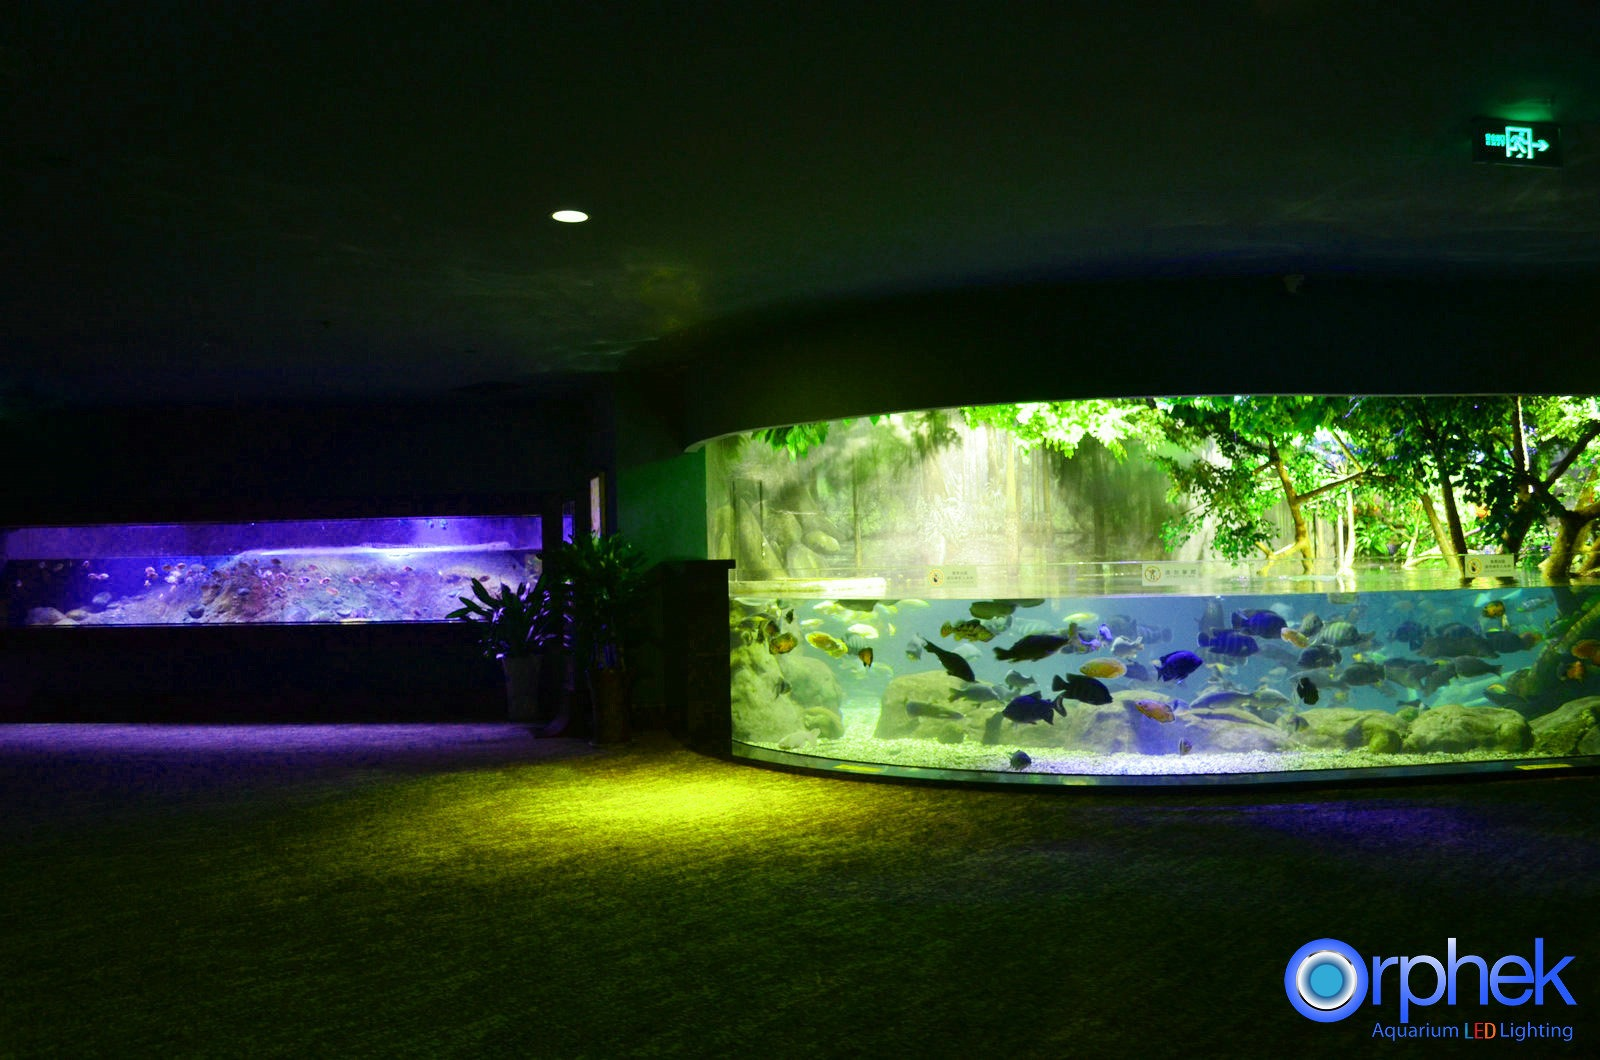 Chengdu-openbare-aquarium LED-verlichting-amazon -flooded-forest-5